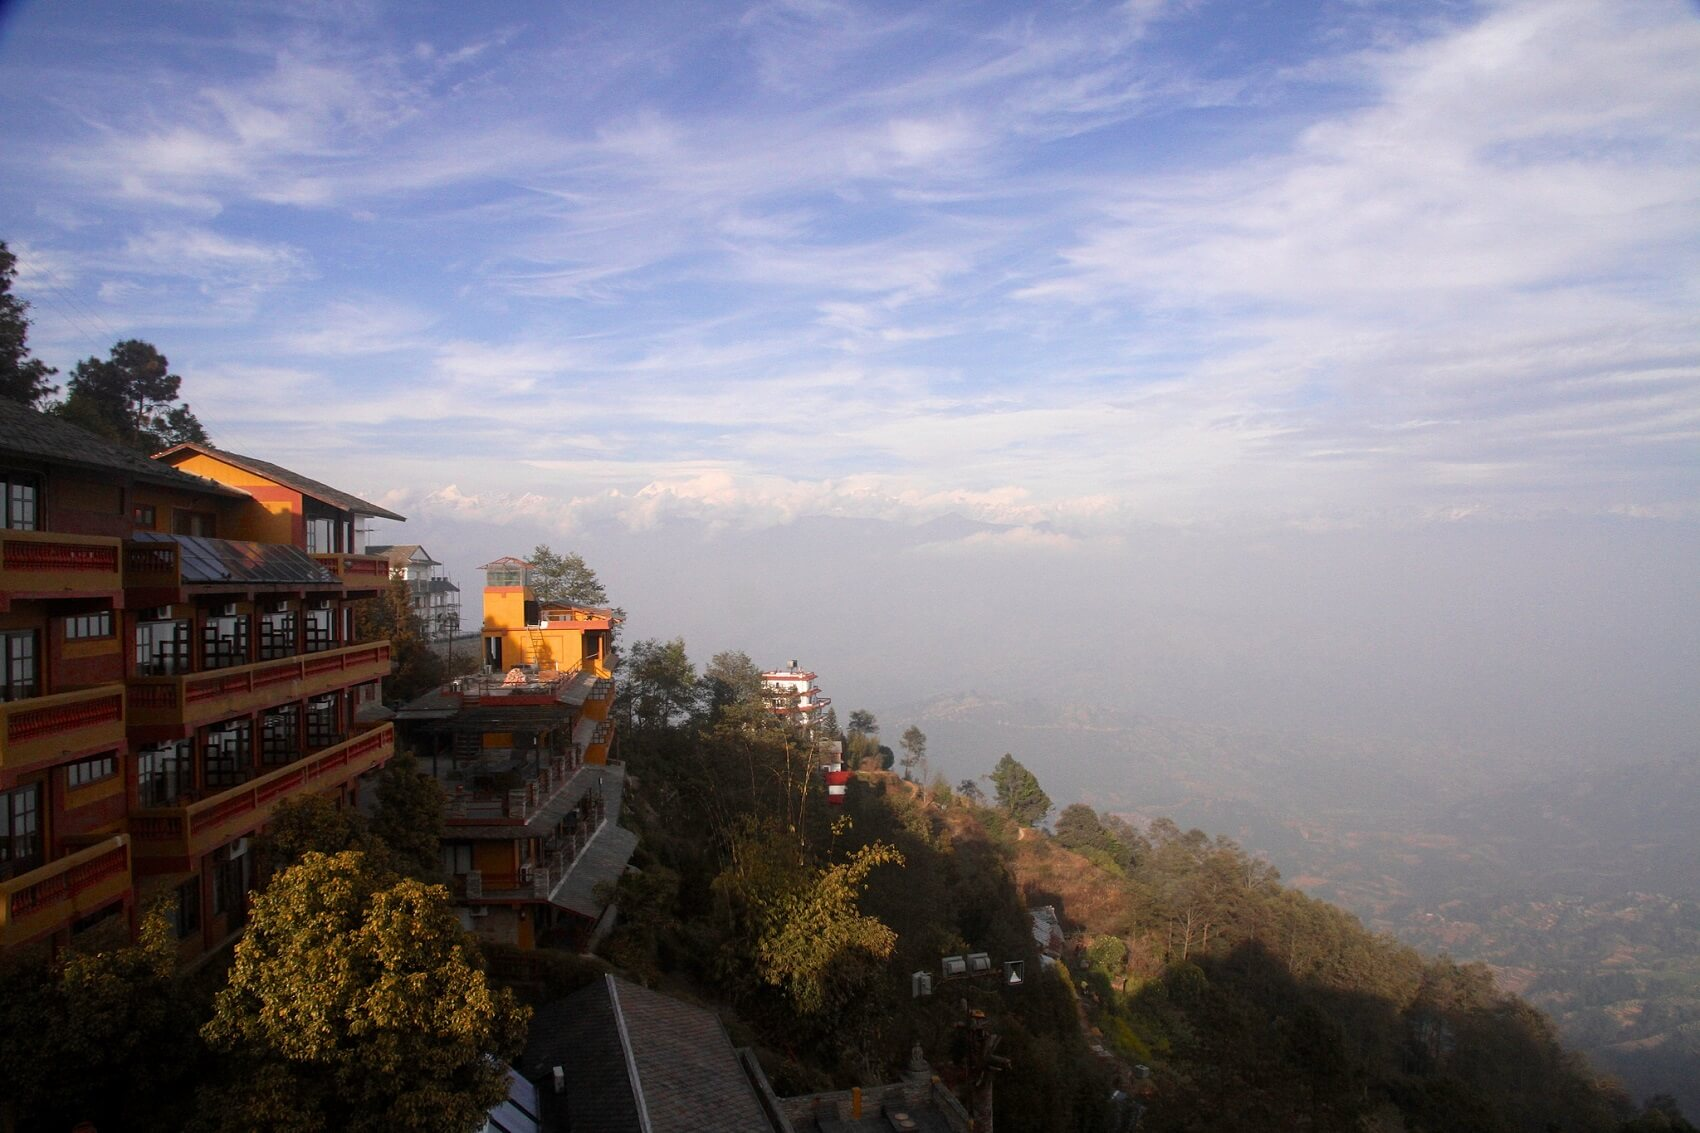 View from Nagarkot View Point